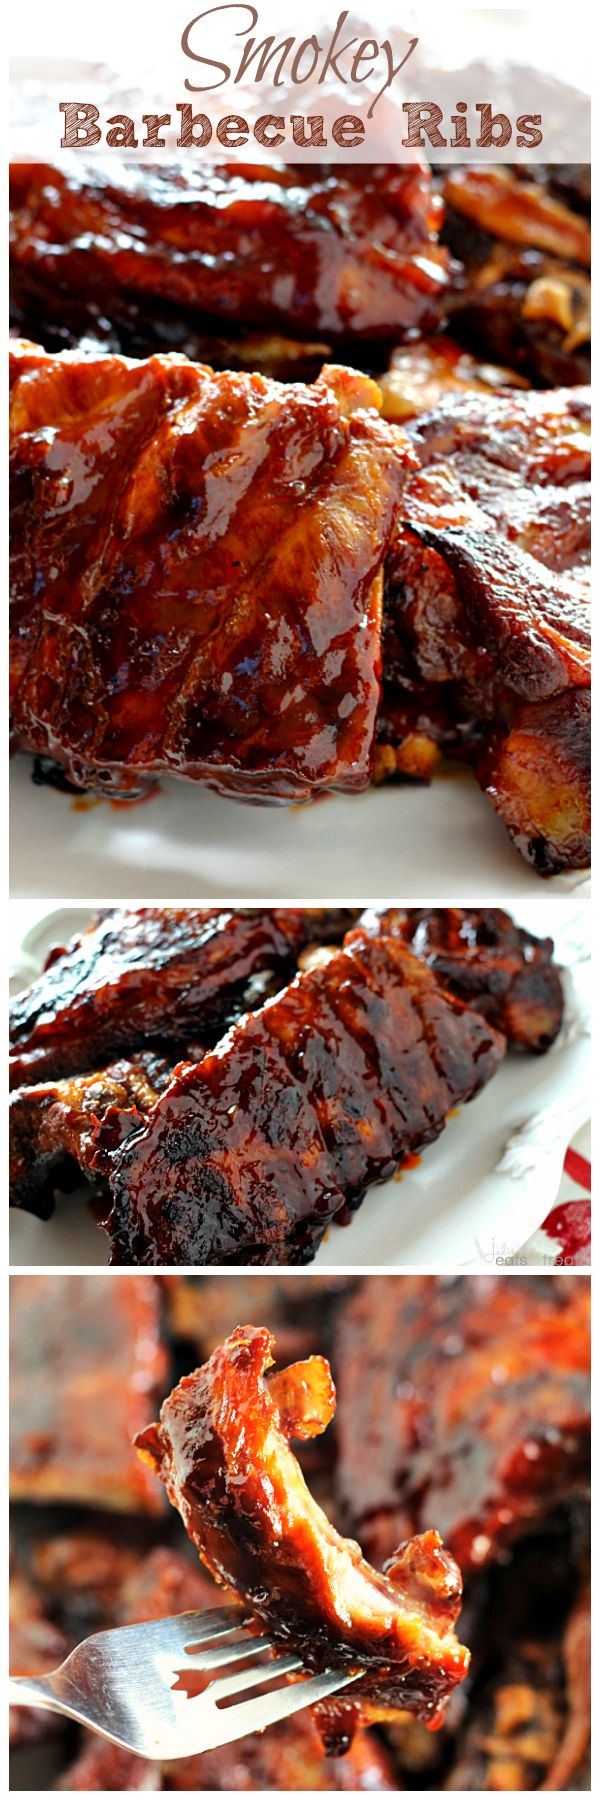 Smokey Barbecue Ribs ~ Smokey, Tender Ribs Loaded in a Homemade Barbecue Sauce! http://papasteves.com/blogs/news